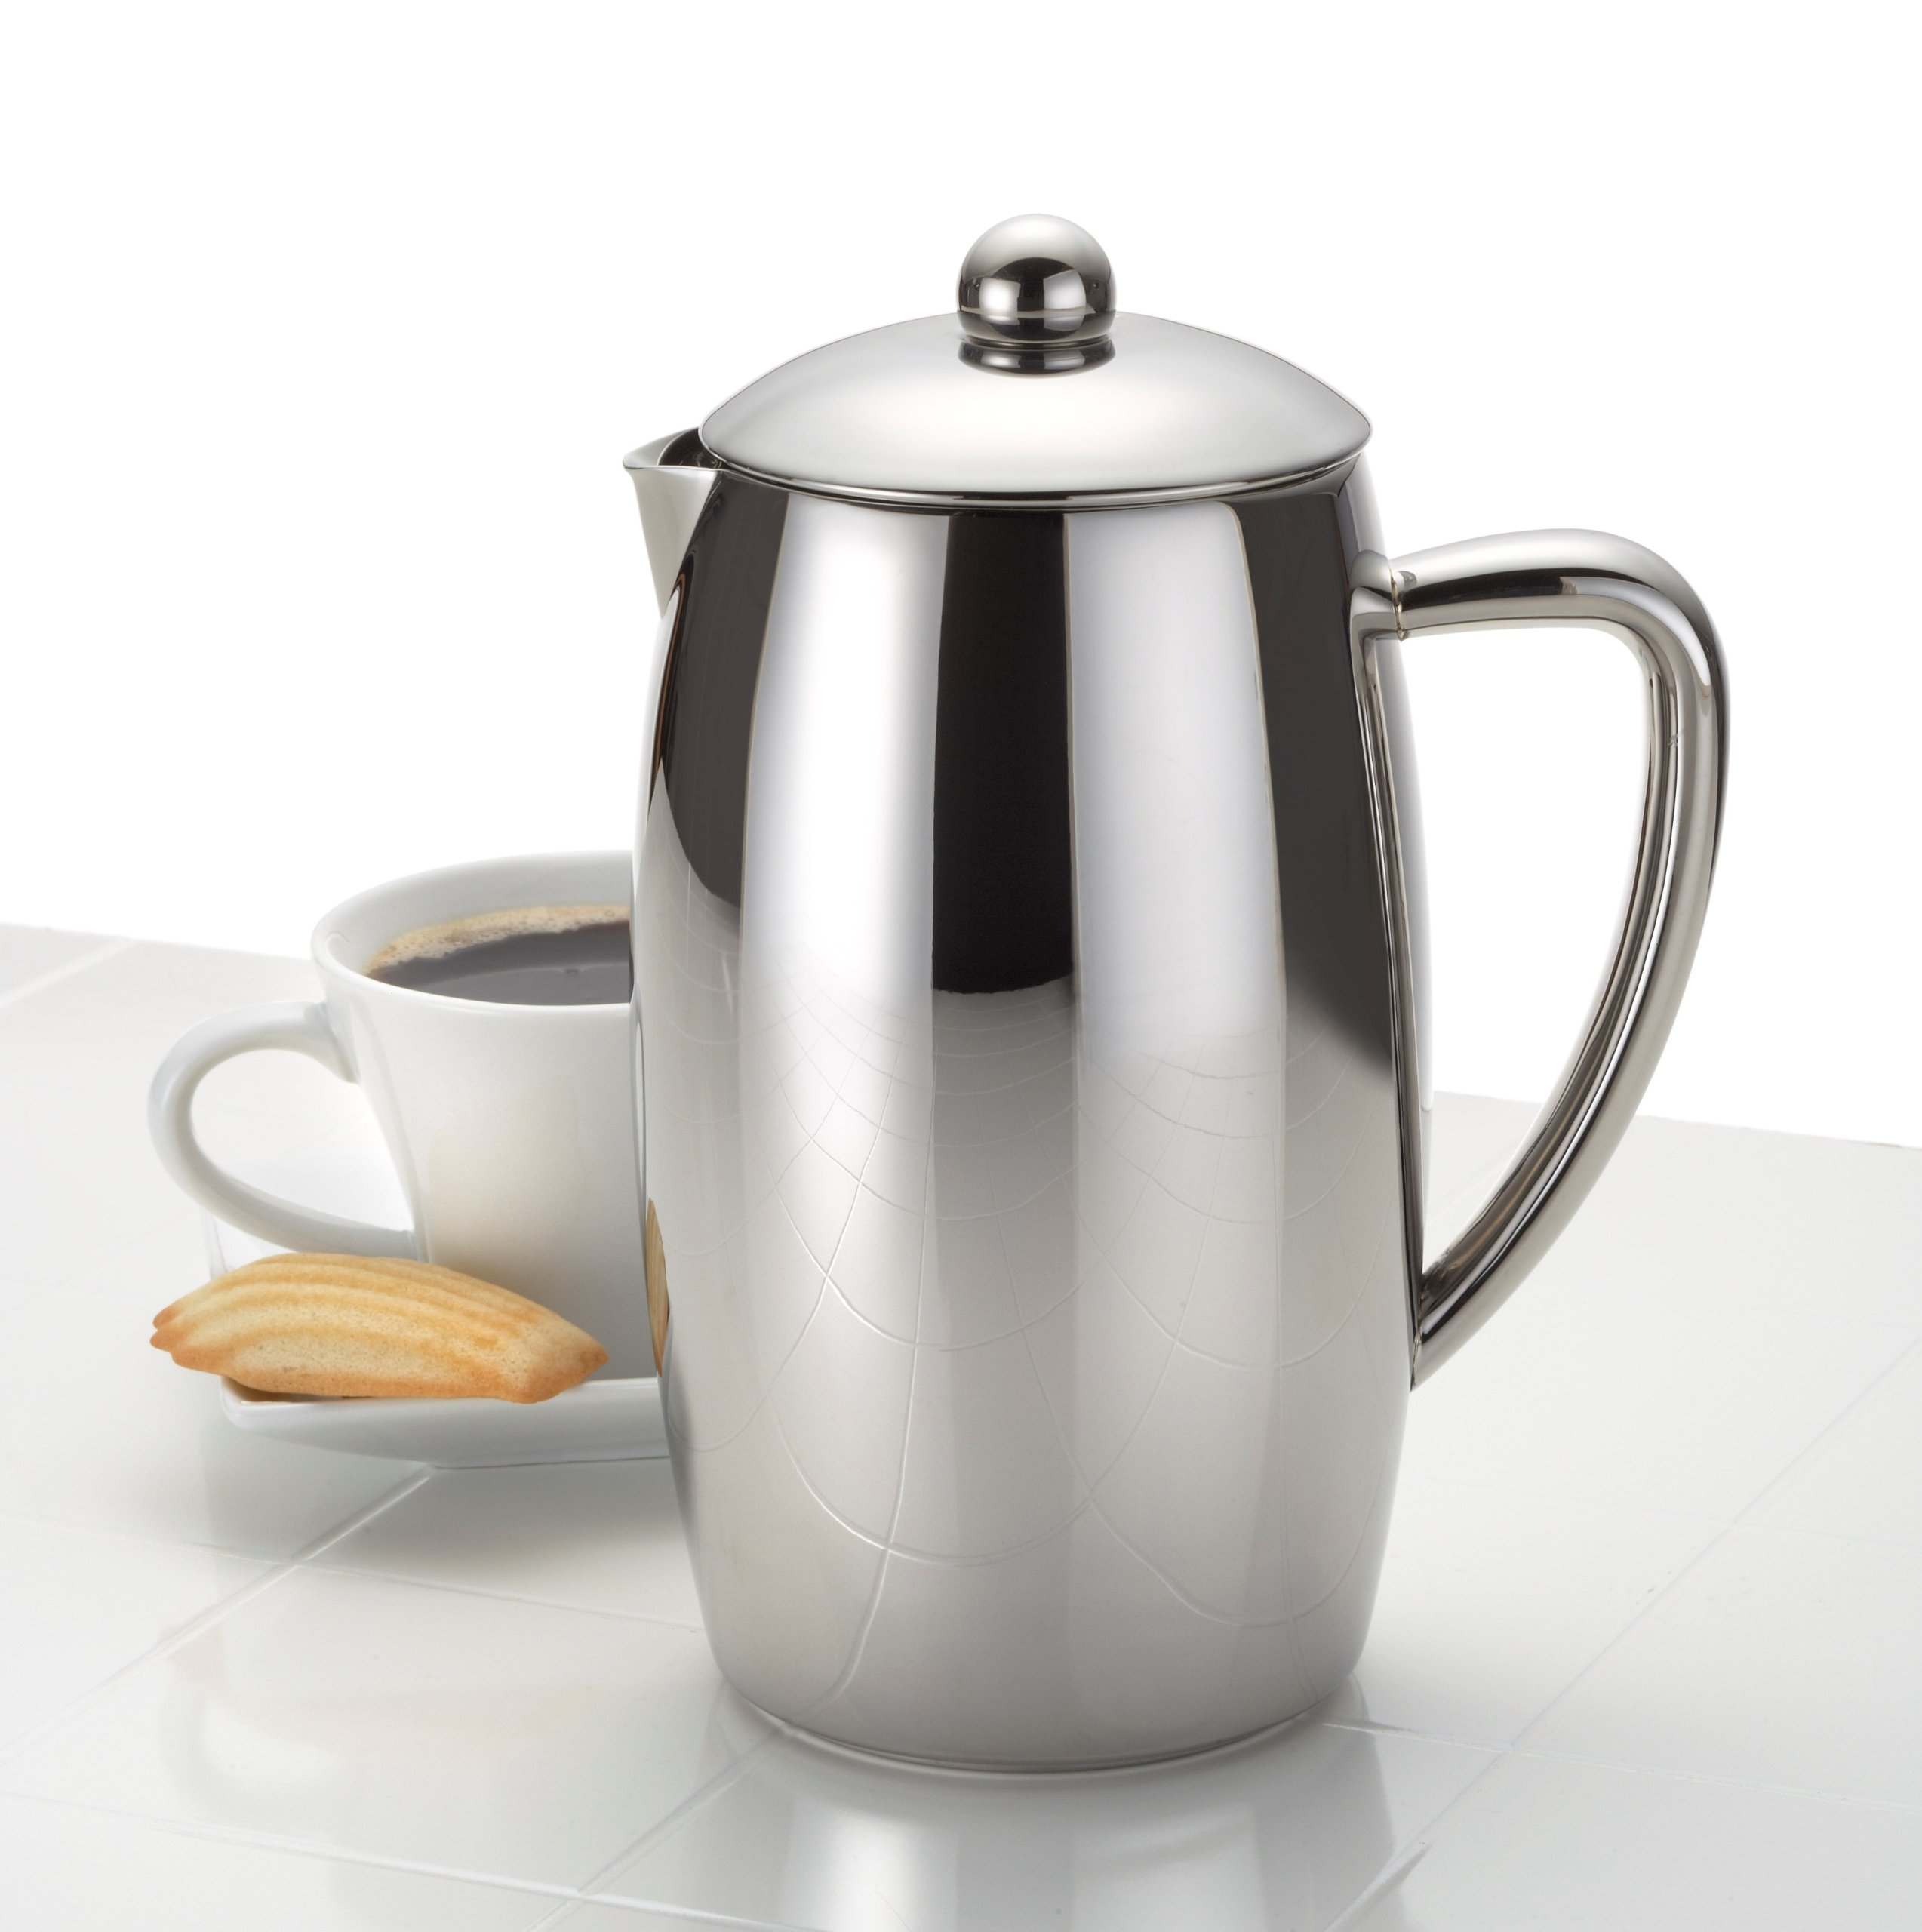 BonJour Coffee Self-Insulated Stainless Steel French Press, 33.8-Ounce, Triomphe(tm) by BonJour